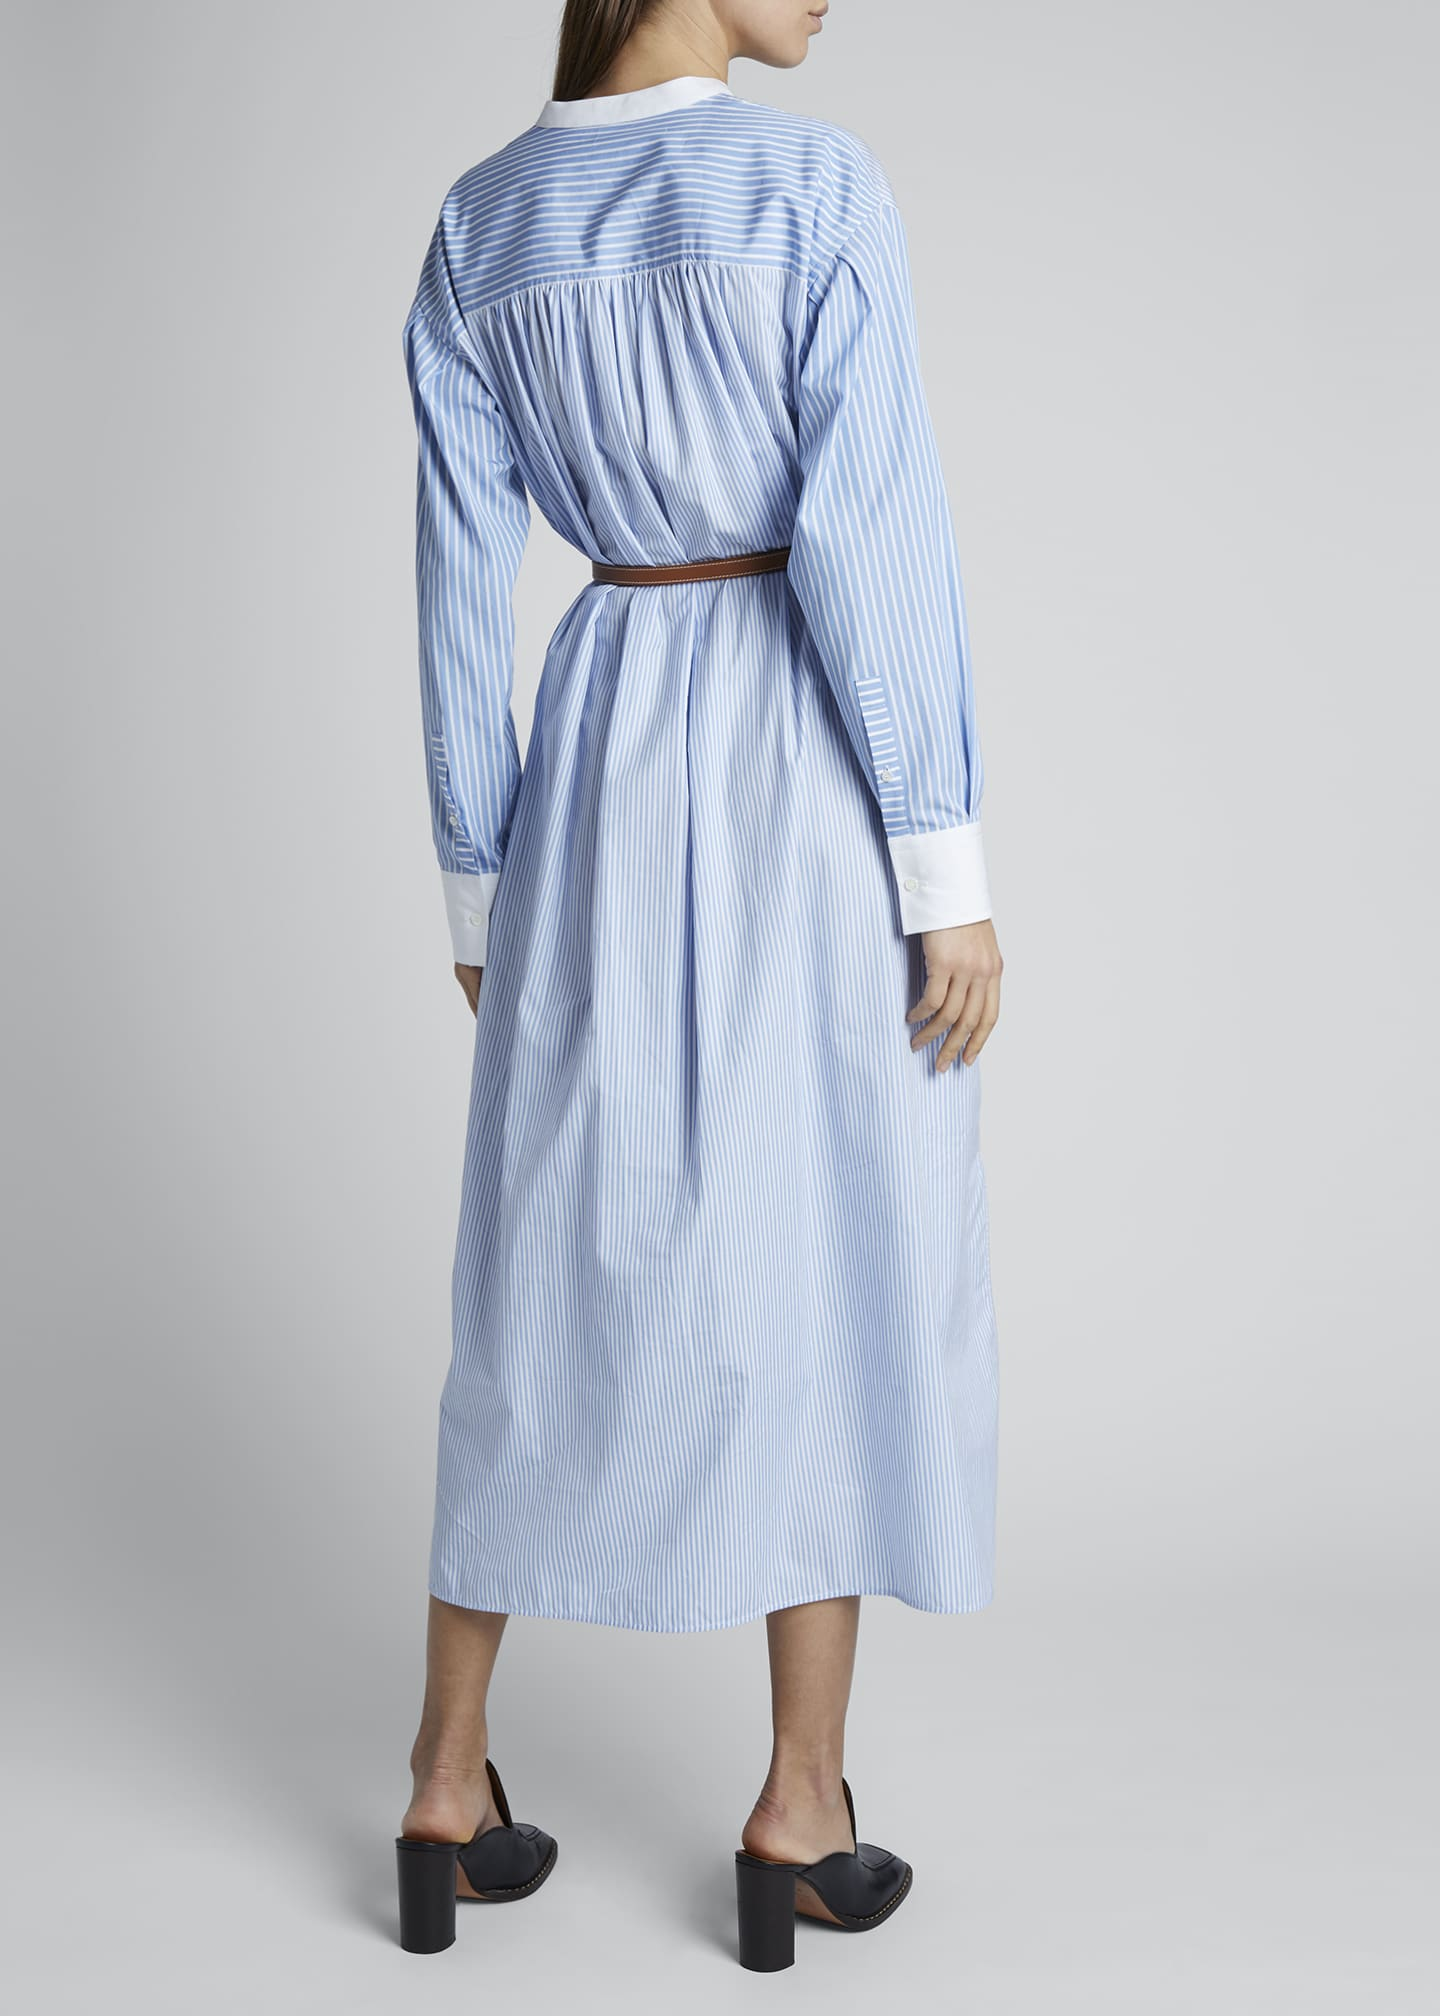 Image 2 of 4: Striped Cotton Shirtdress with Leather Belt